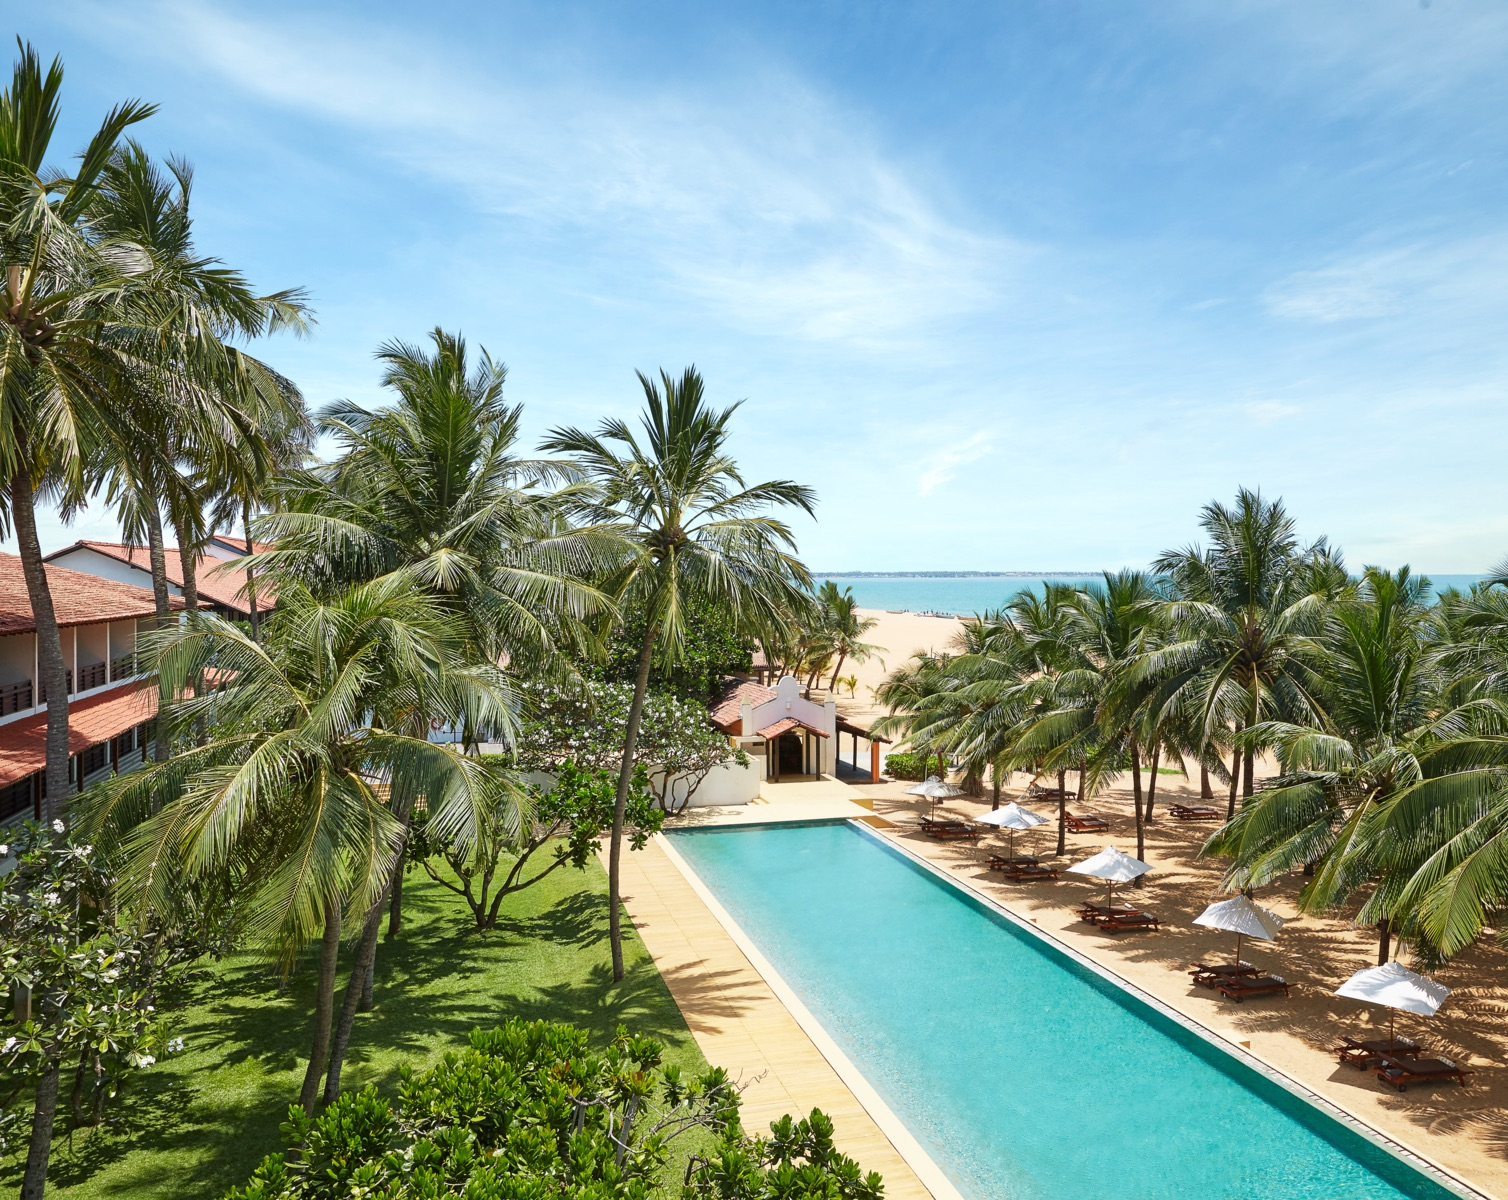 invite-to-paradise-sri-lanka-specialists-experts-travel-agent-tour-operator-jetwing-beach-hotel-negombo-exterior-2.jpg